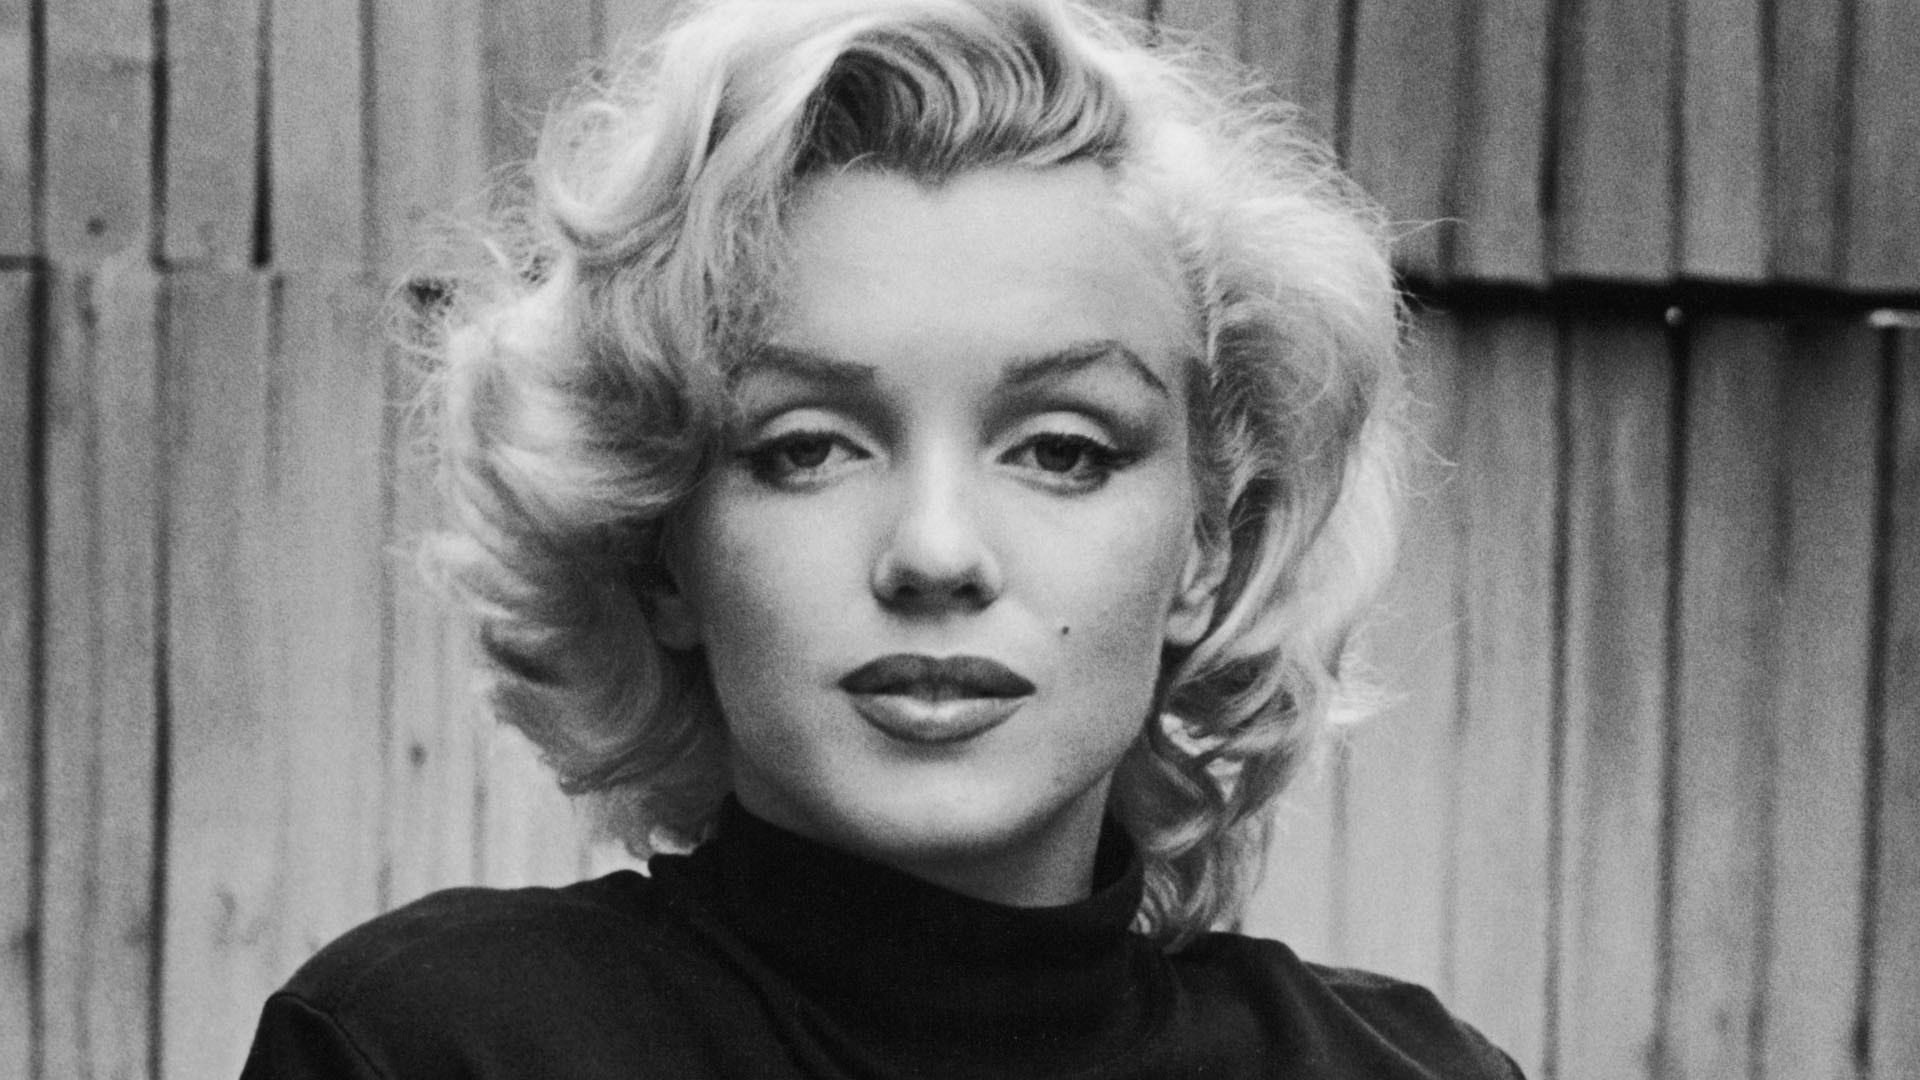 Marilyn Monroe Wallpaper For Computer 70 Images